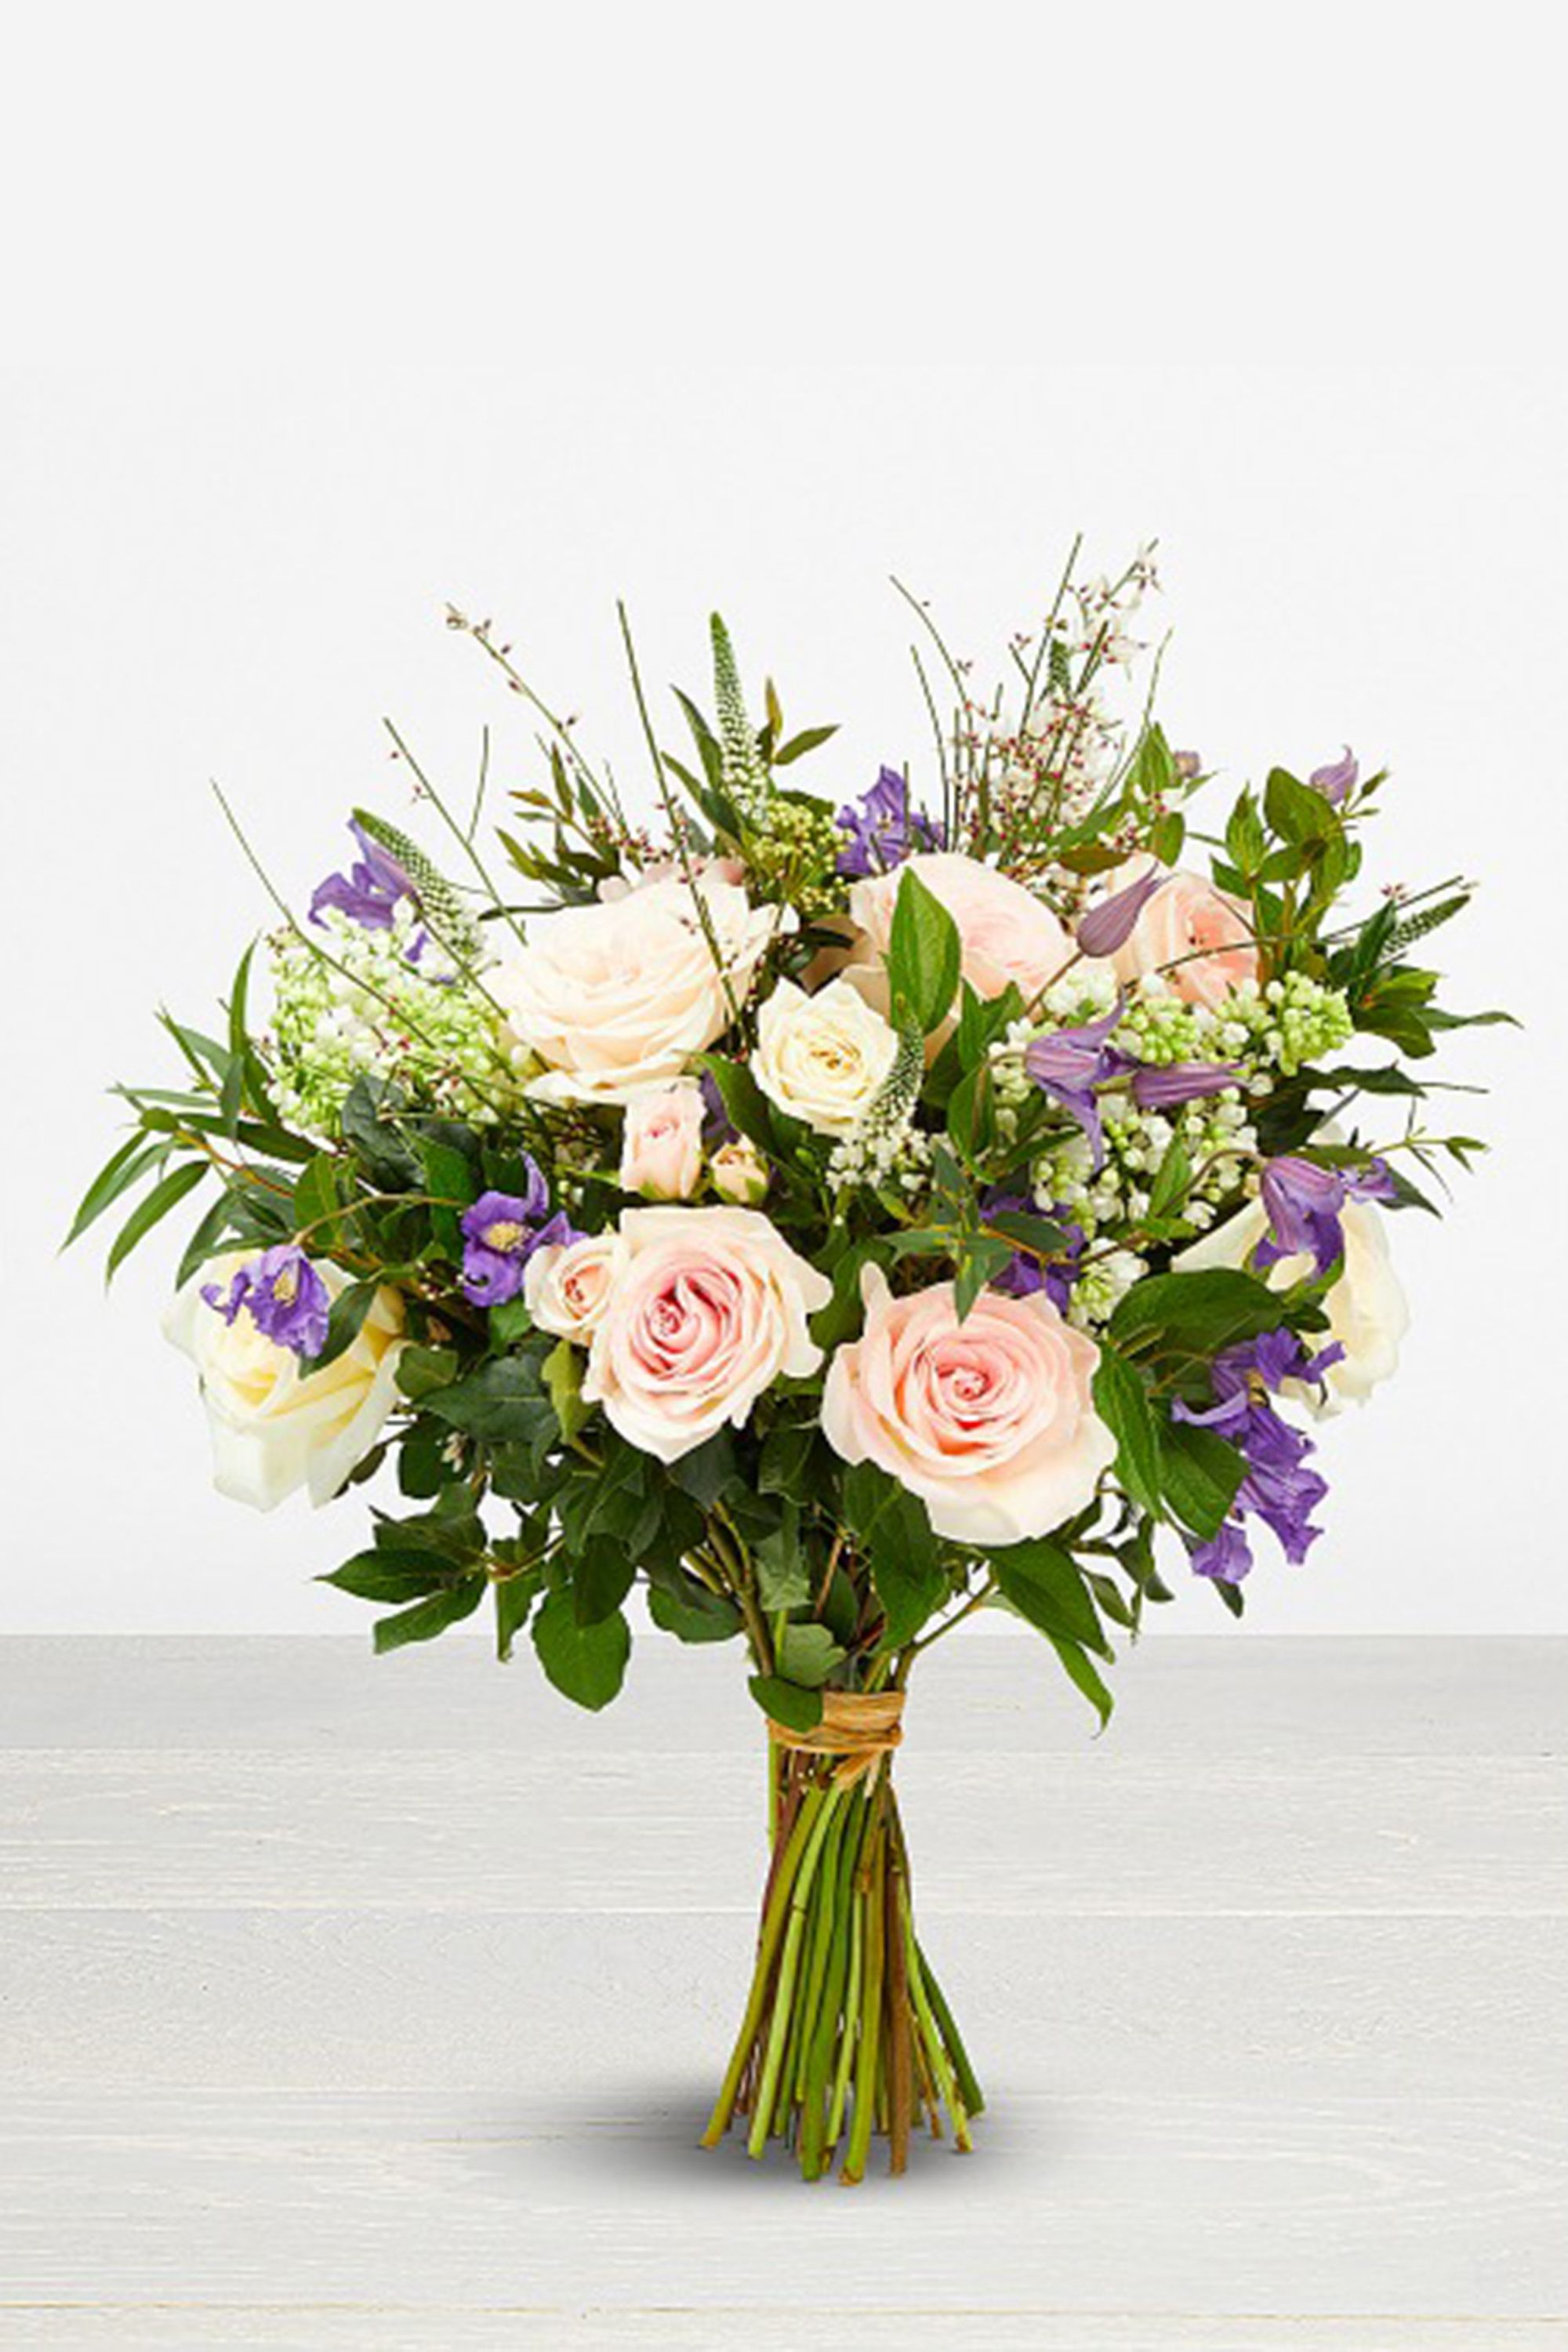 Flowers, mother's day gift guide